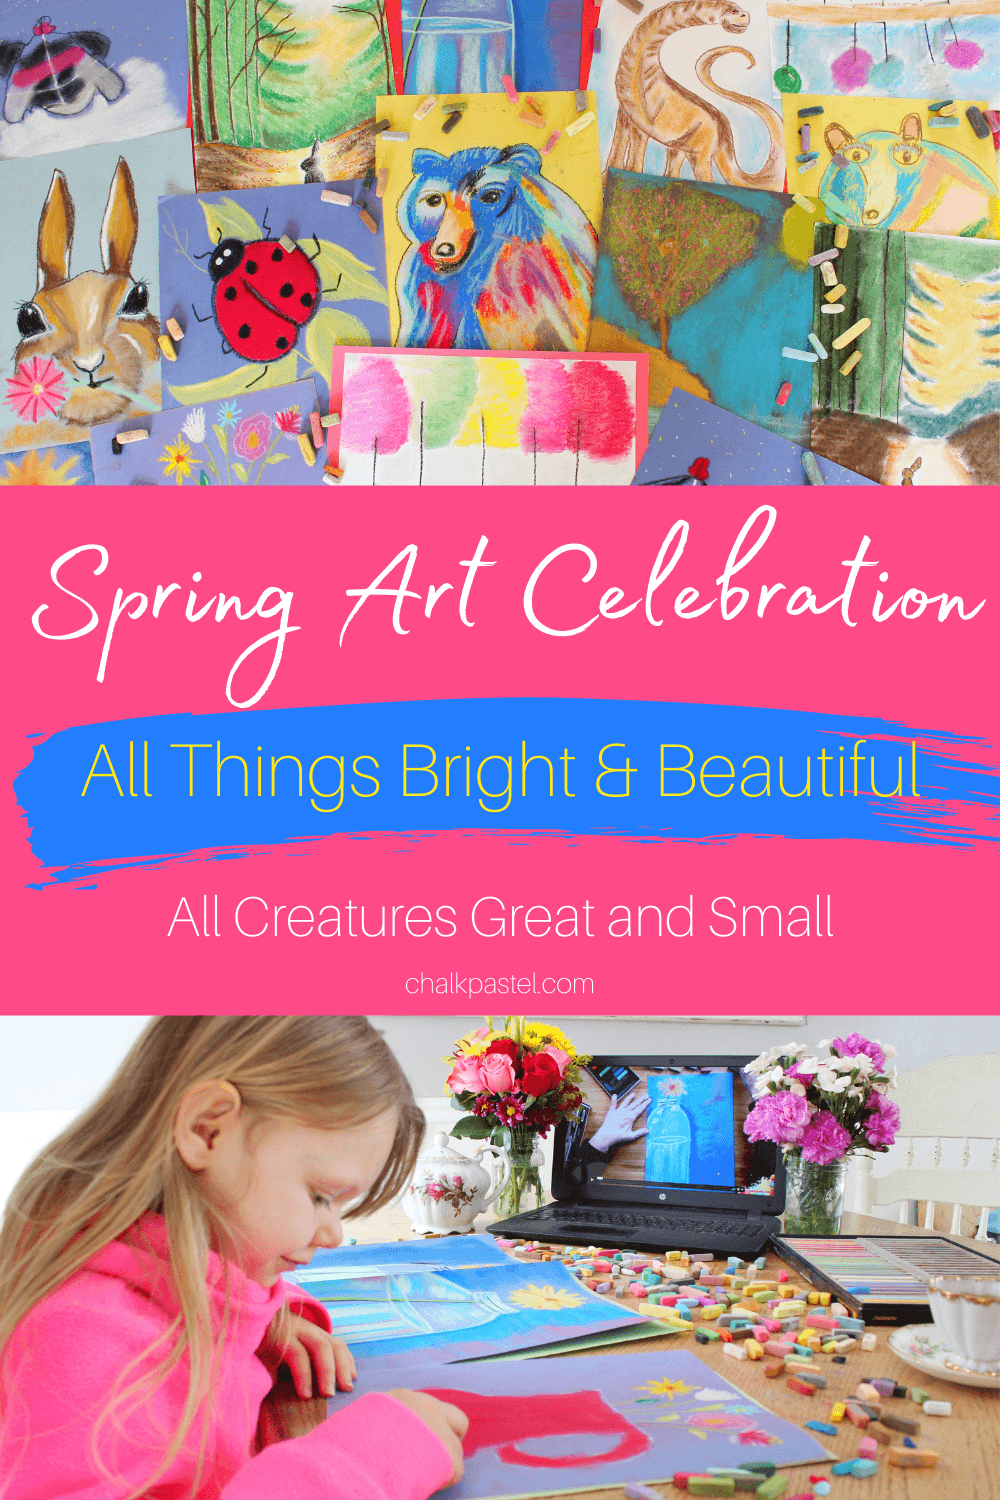 Spring Art Celebration with Chalk Pastels: Perfect for commemorating spring, Nana's spring art celebration with chalk pastels explores all creatures great and small and all things bright and beautiful! These nature-inspired art lessons are easy and fun for the whole family! #springartcelebration #springartwithchalkpastels #chalkpastelartforkids #chalkpastelspringart #springart #springartforkids #springchalkpastels #springchalkpastelsforkids